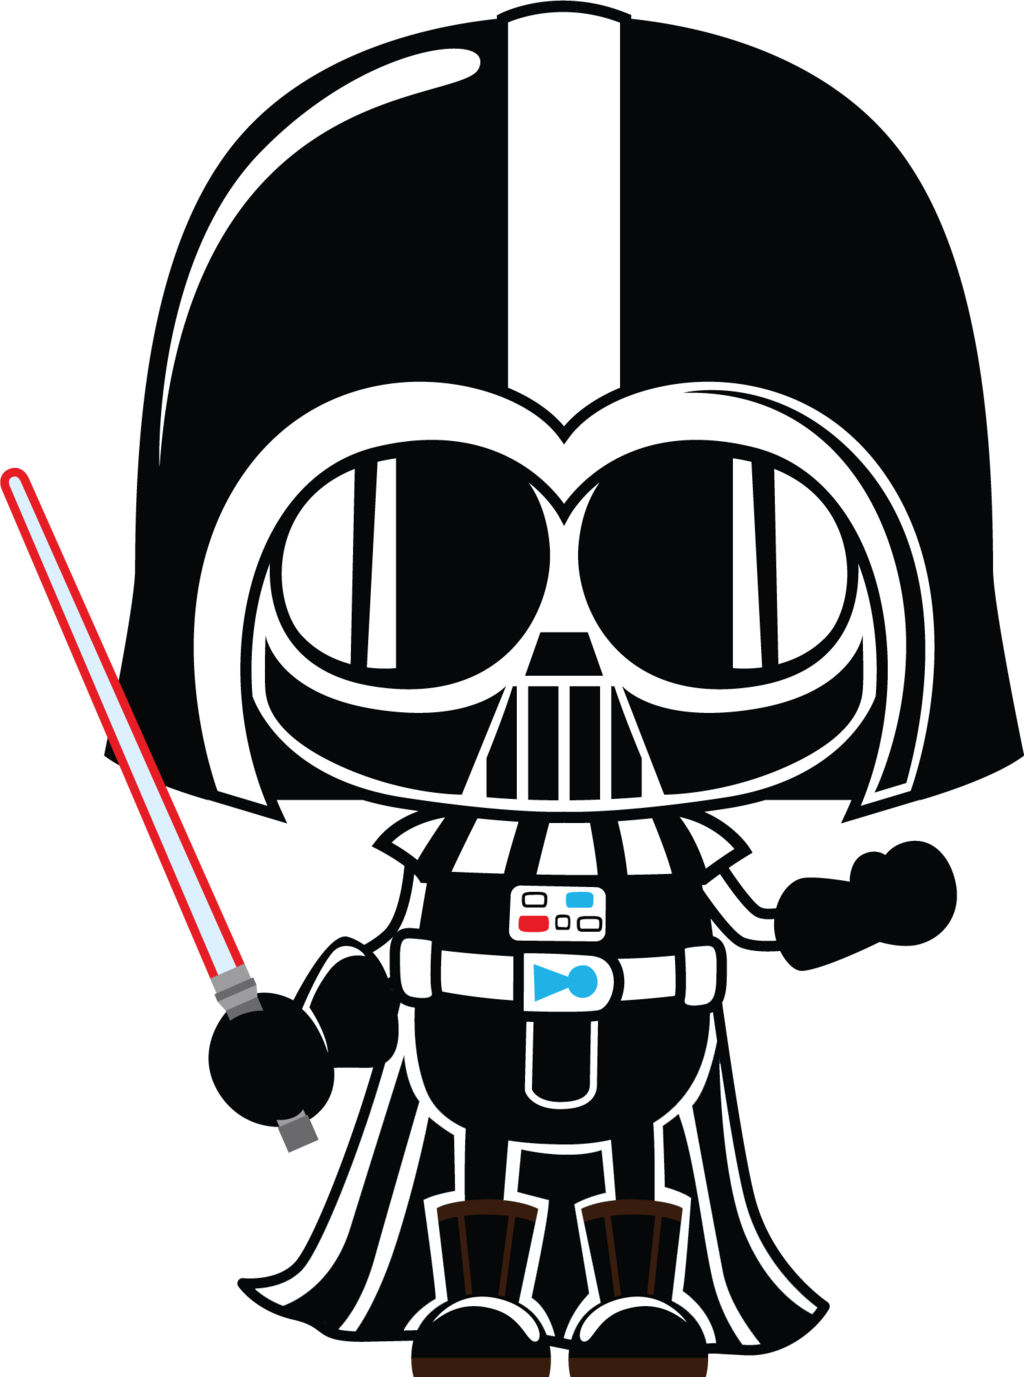 Star wars jedi clipart vector freeuse stock Darth Vader by Chrispix326.deviantart.com on @DeviantArt | Birthdays ... vector freeuse stock